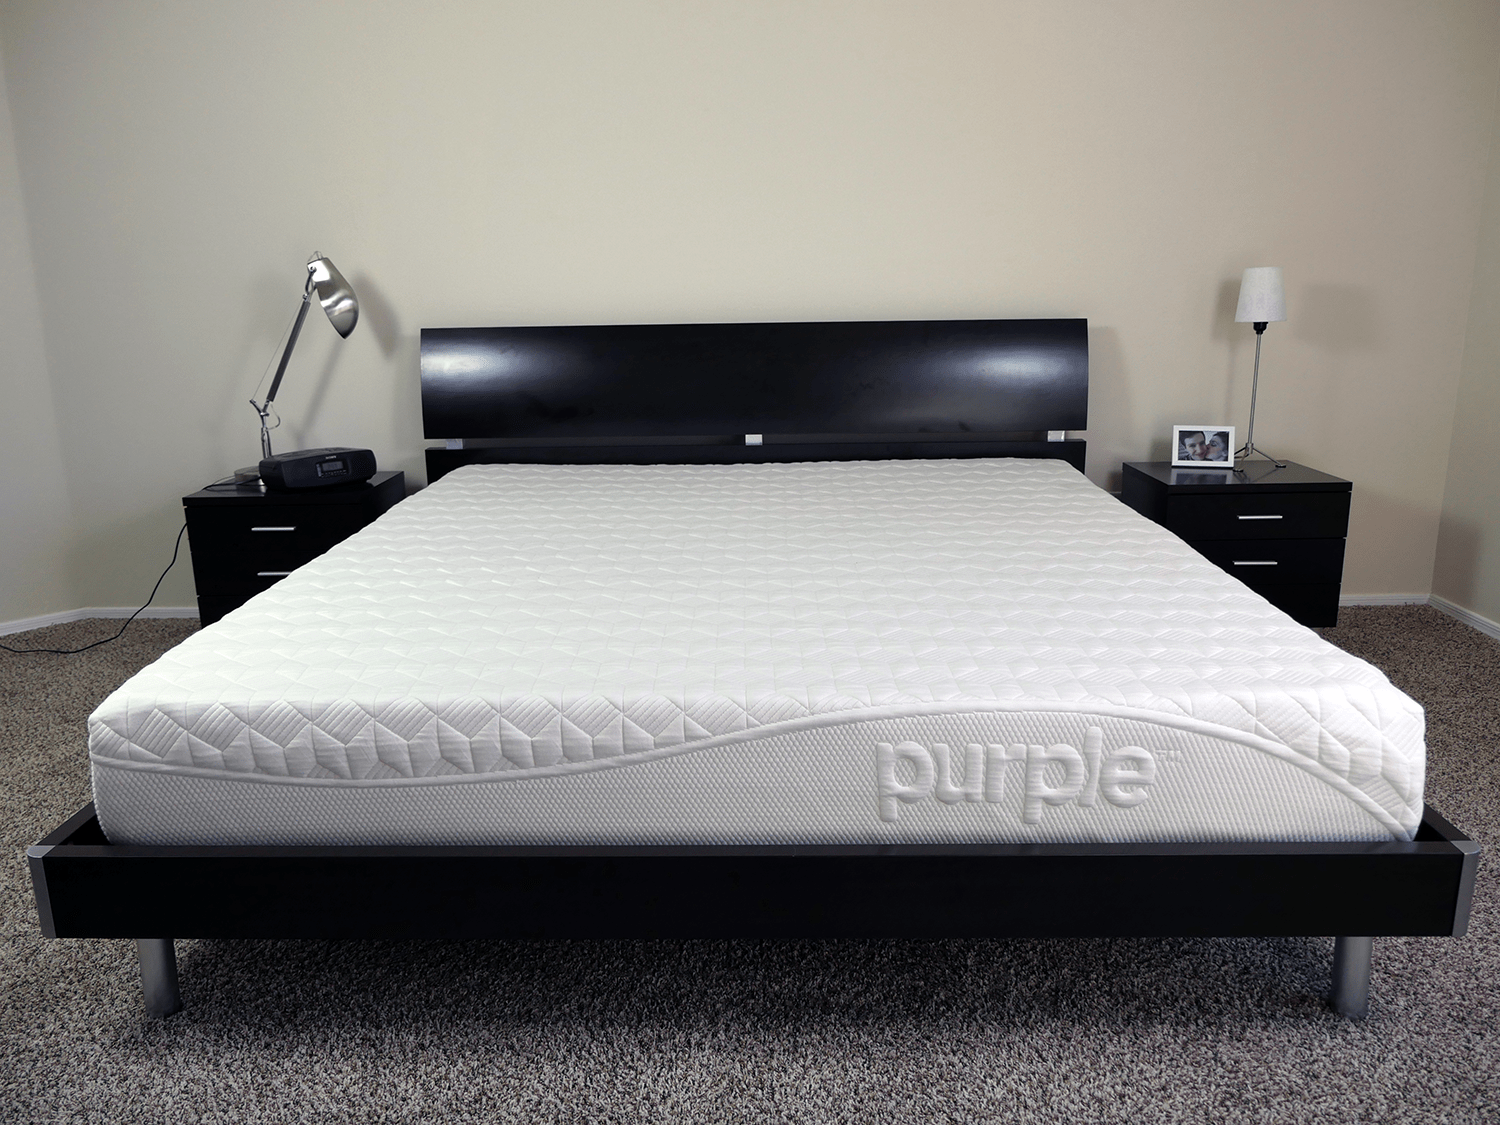 Purple mattress review sleepopolis for Brooklyn bedding vs purple